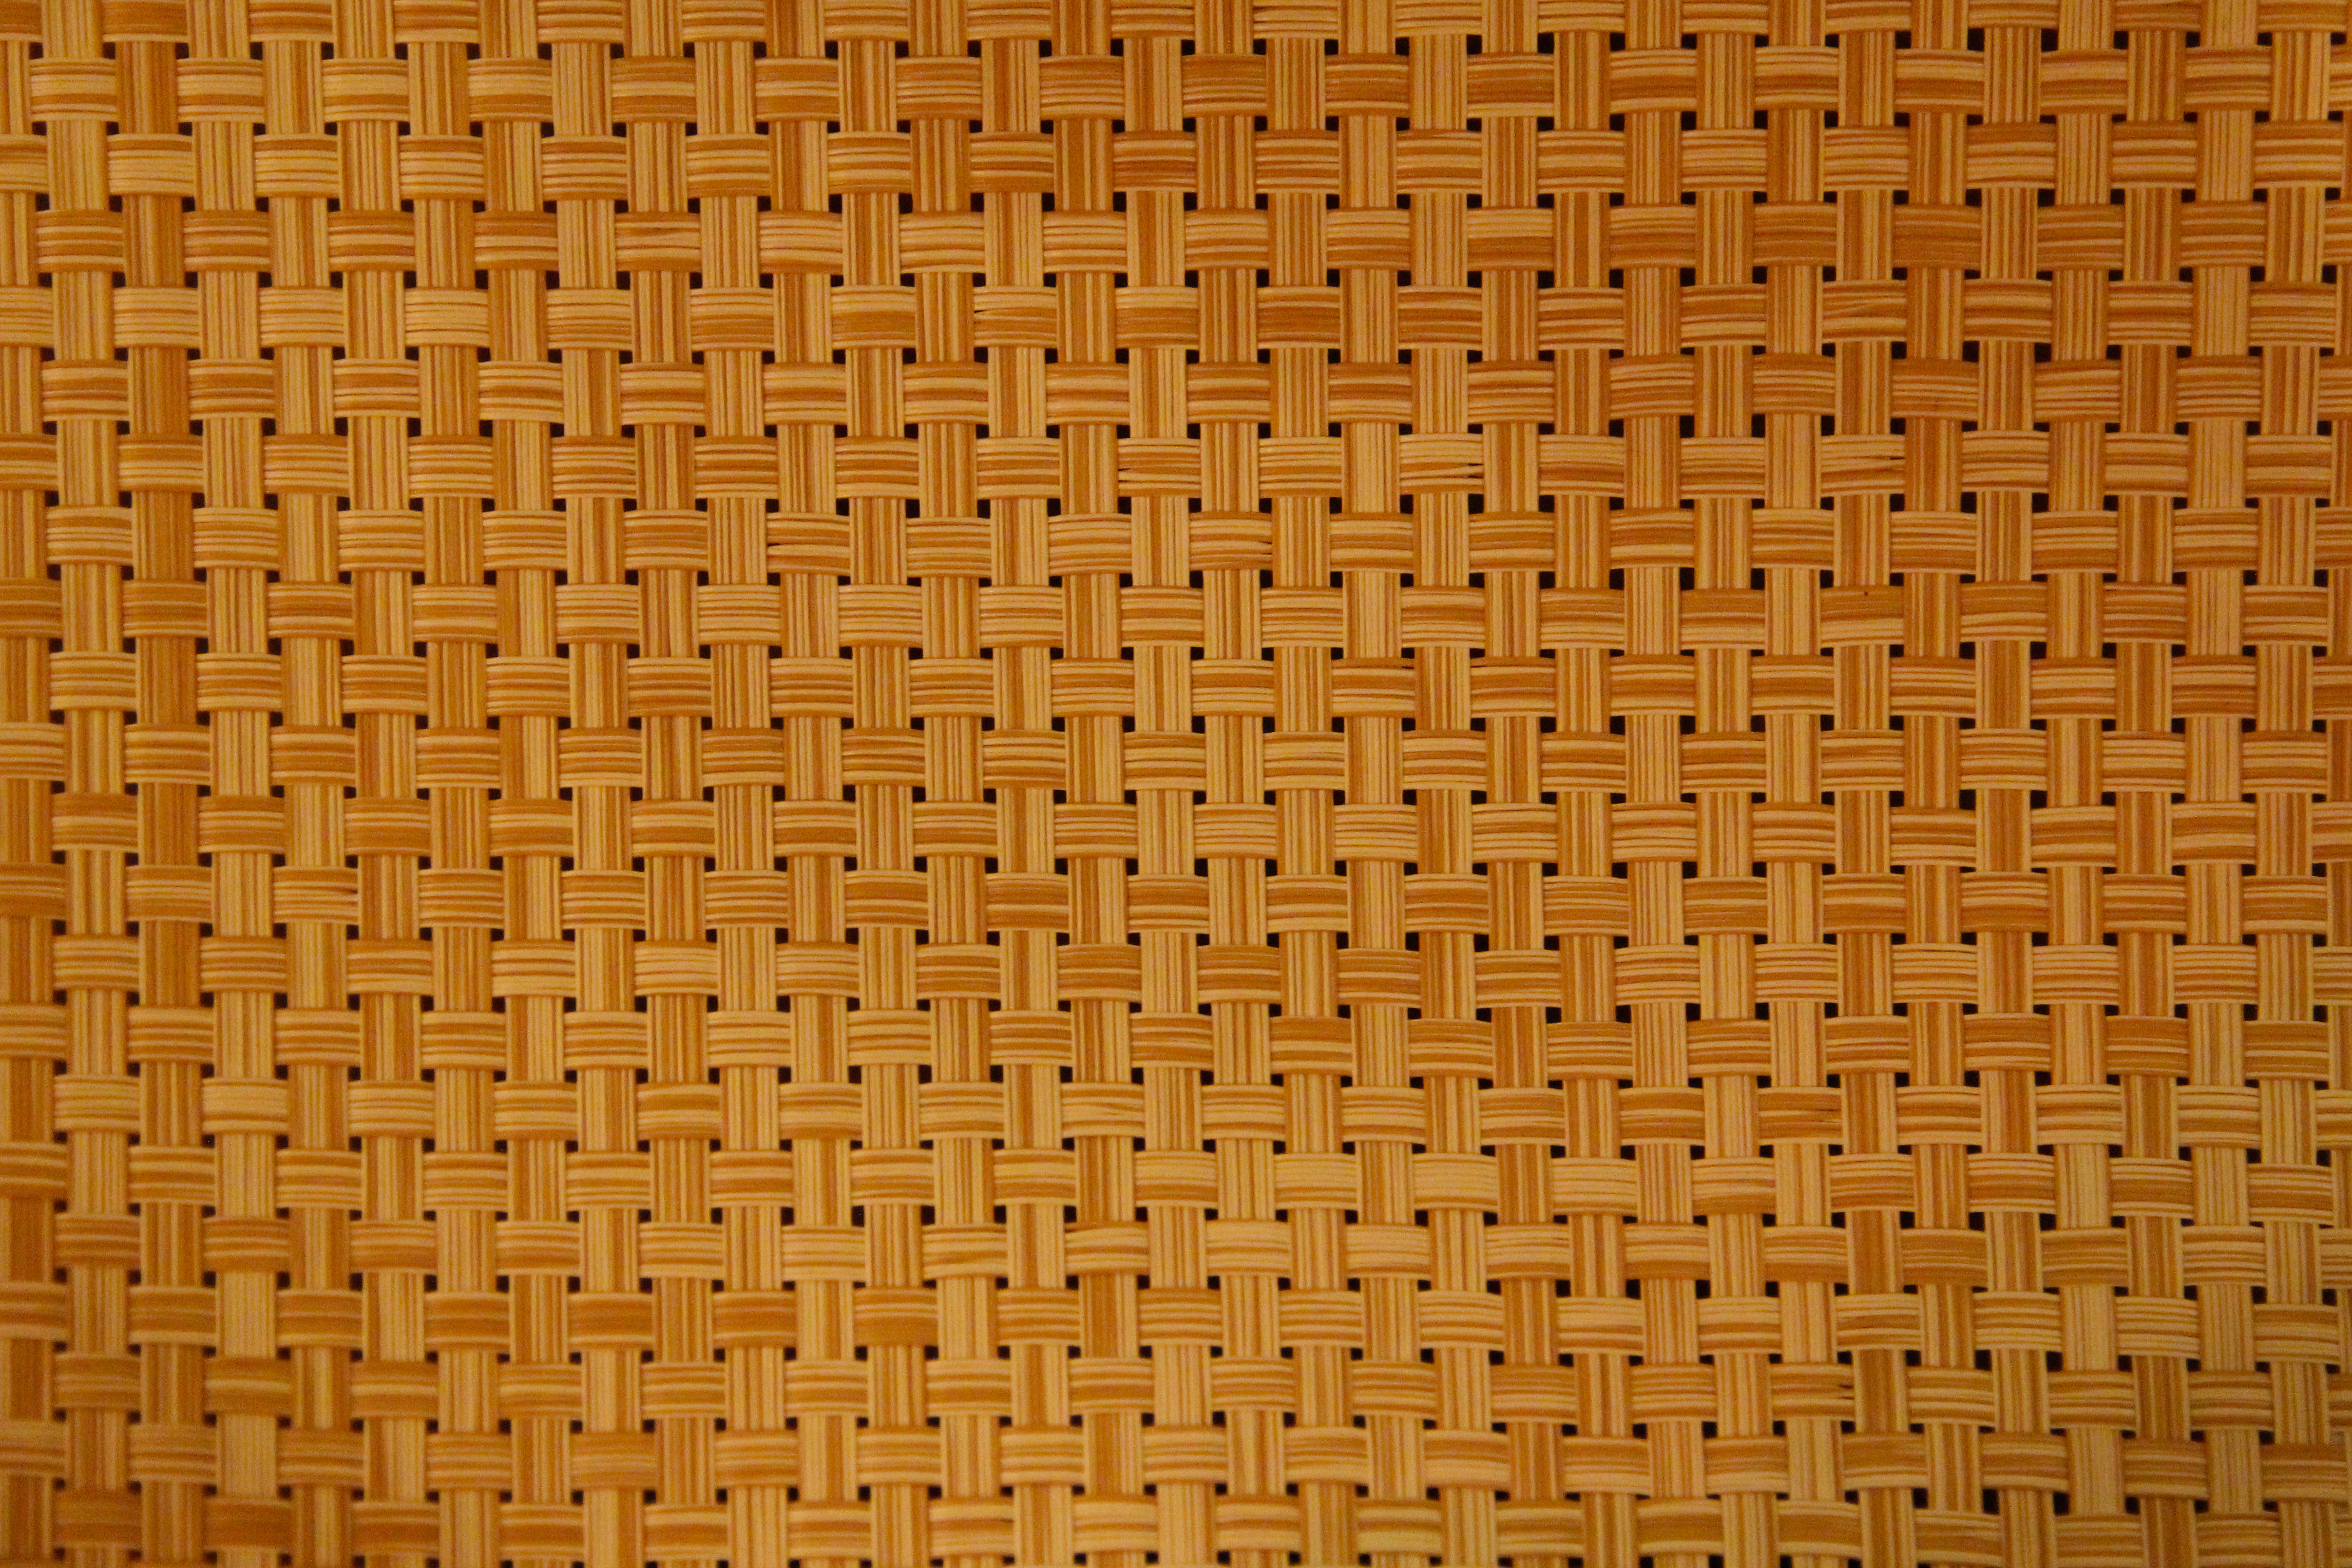 Wood Texture Woven Place Mat Fabric Grain Wallpaper Texturex